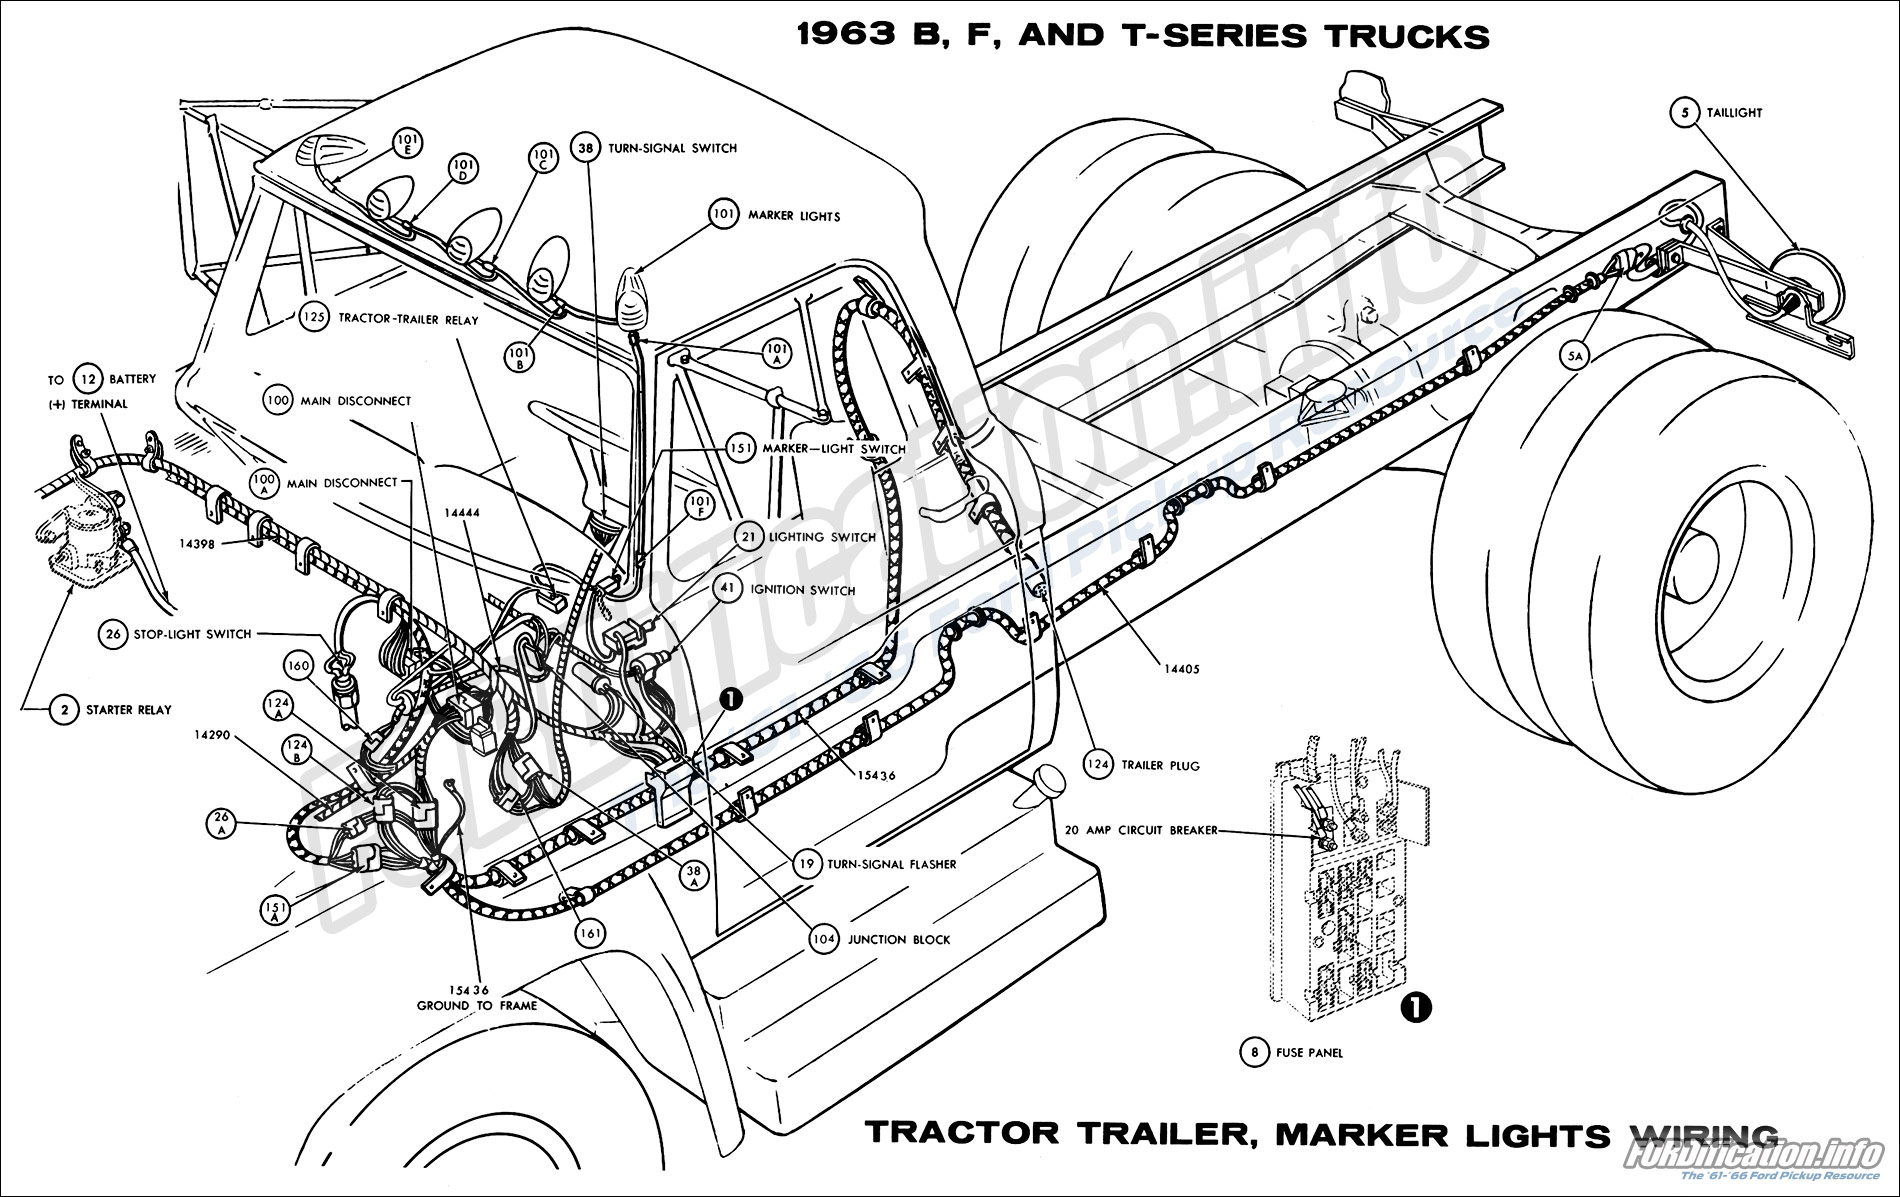 1963 Ford Truck Wiring Diagrams The 61 66 Semi Trailer Light Tractor Marker Lights